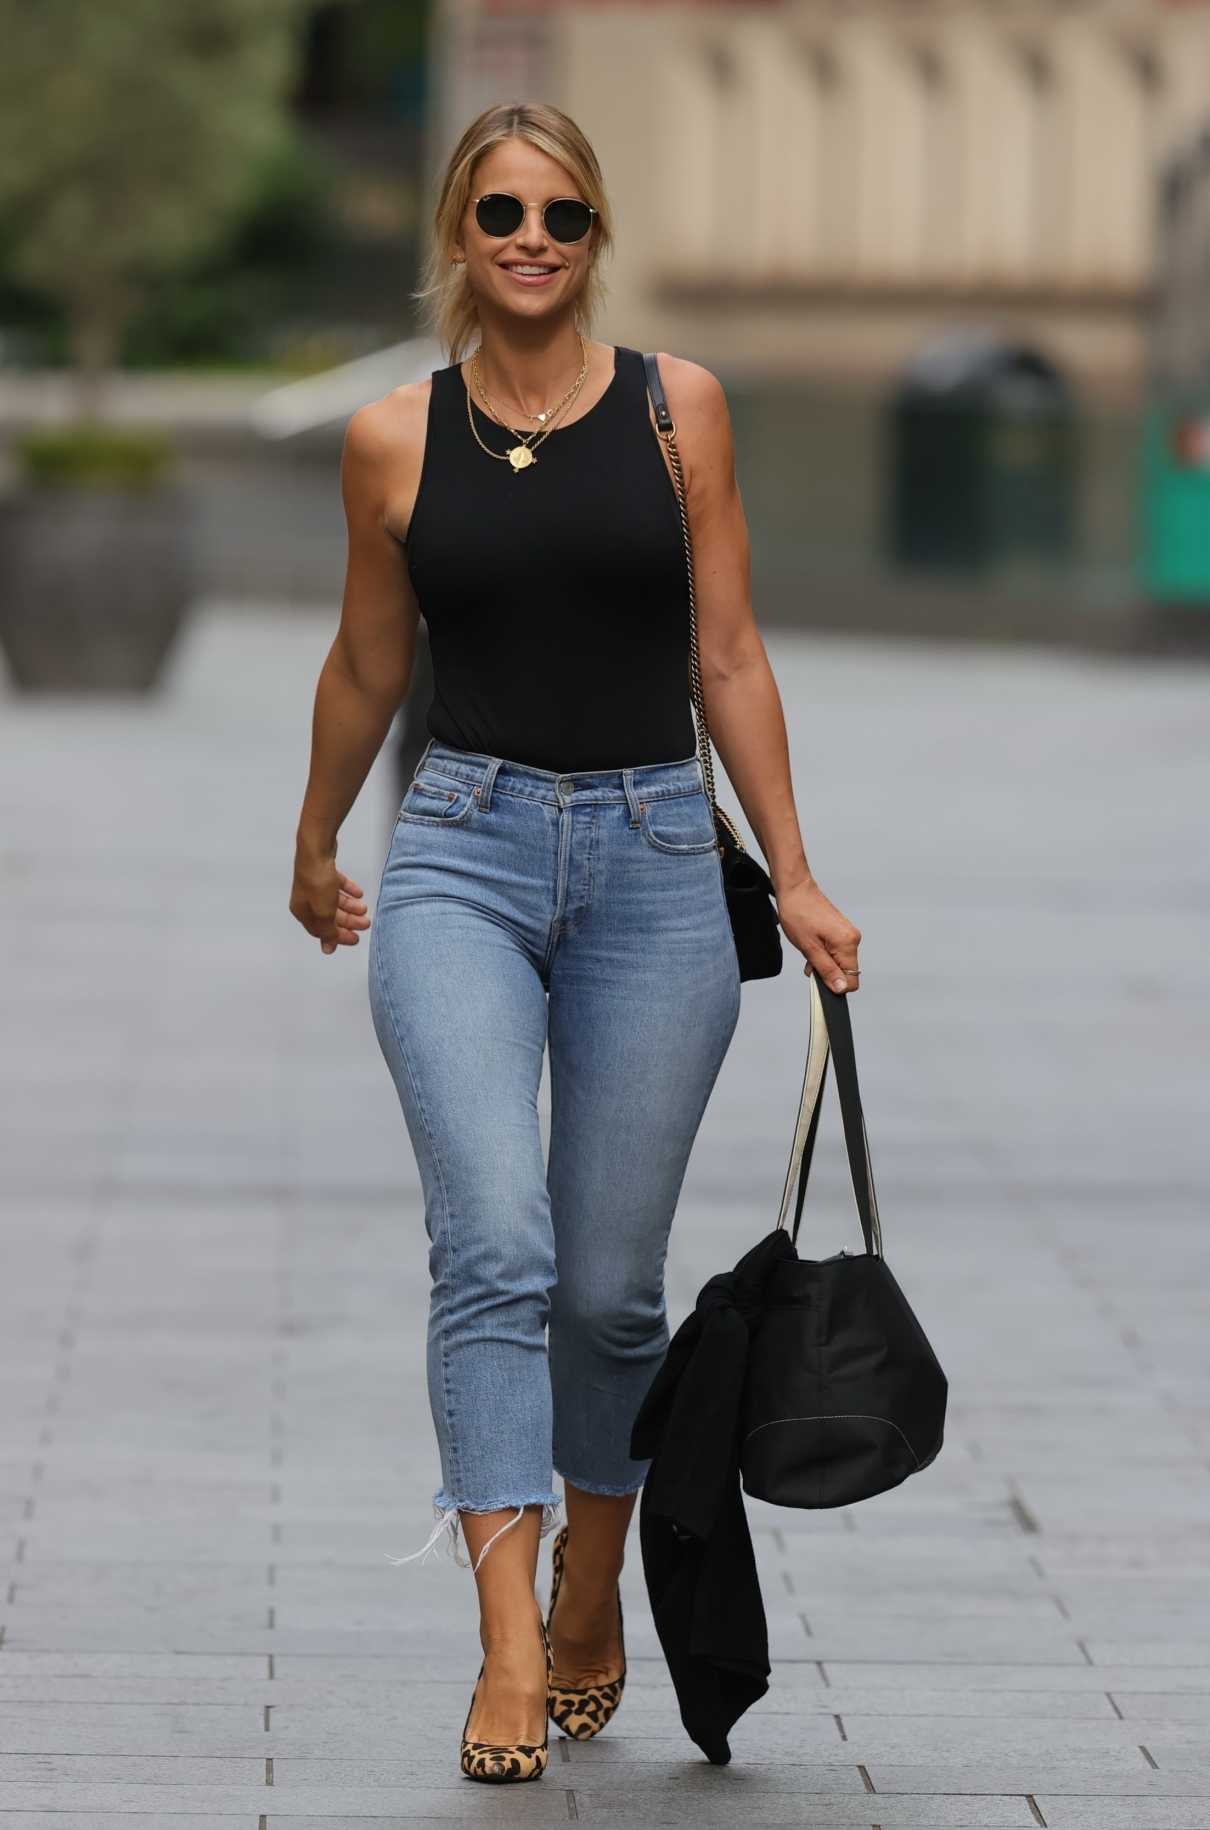 Vogue Williams in a Black Tank Top